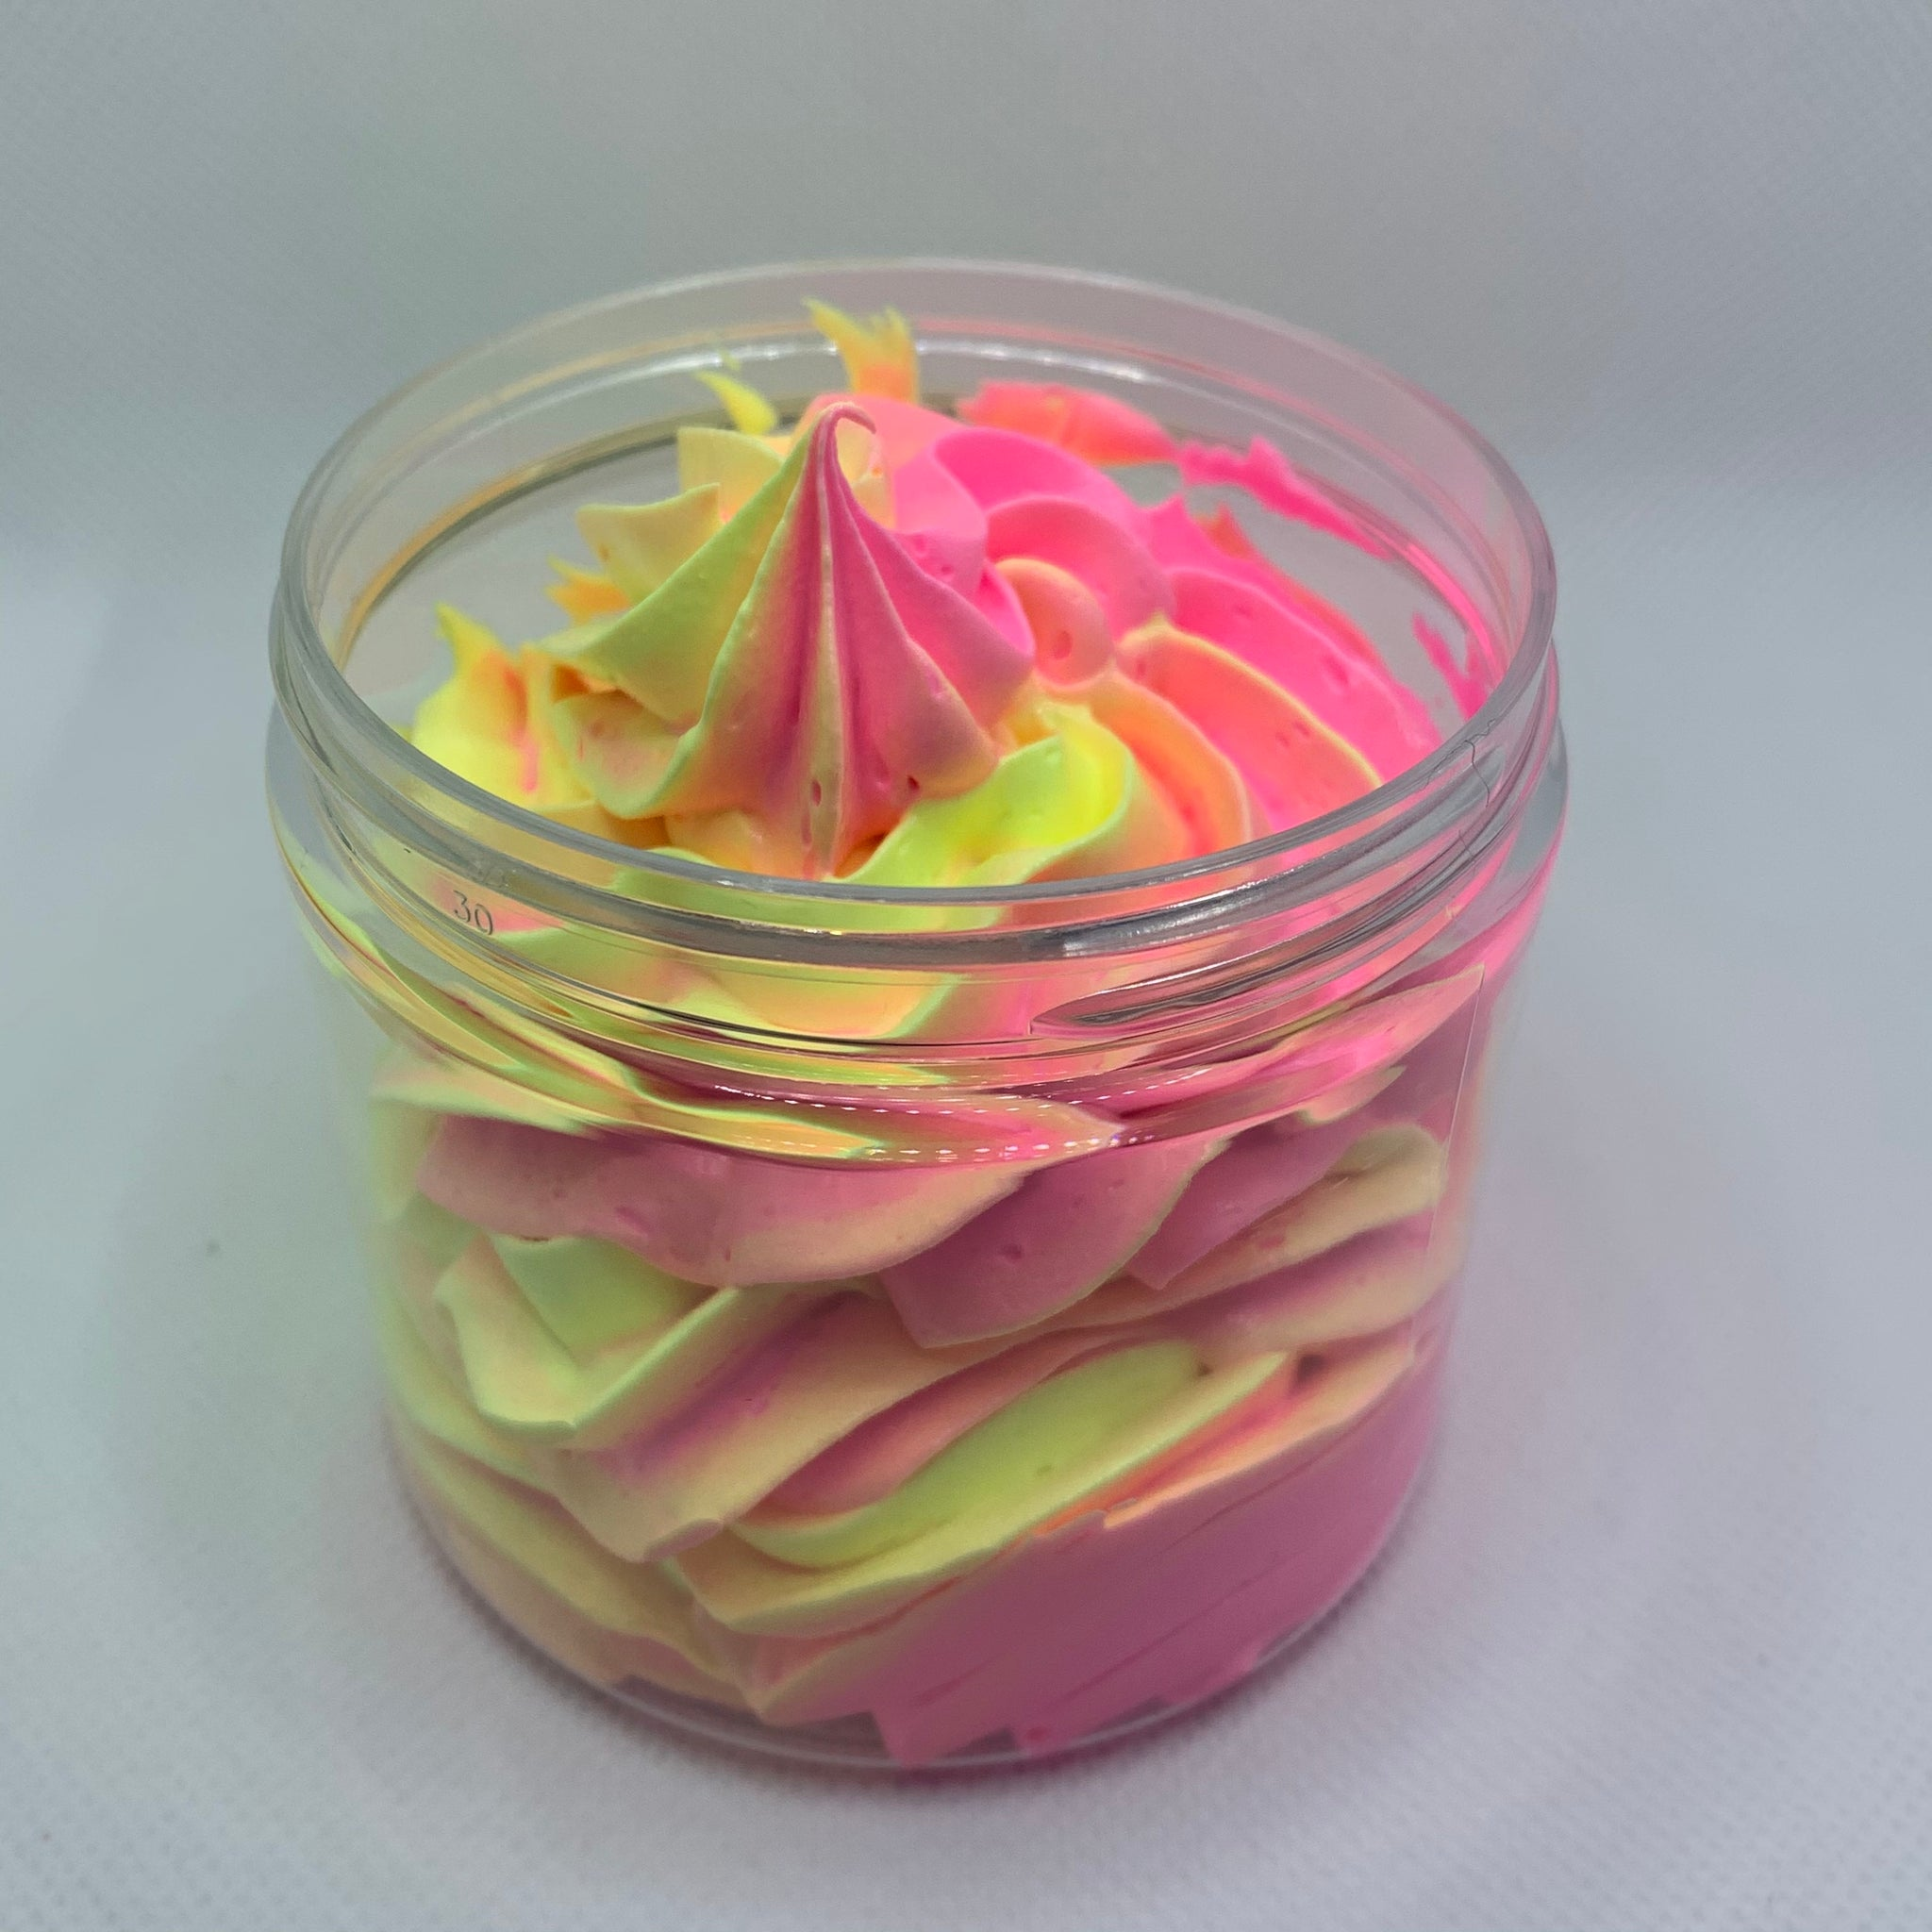 Fruit Salad Sweets Whipped Soap